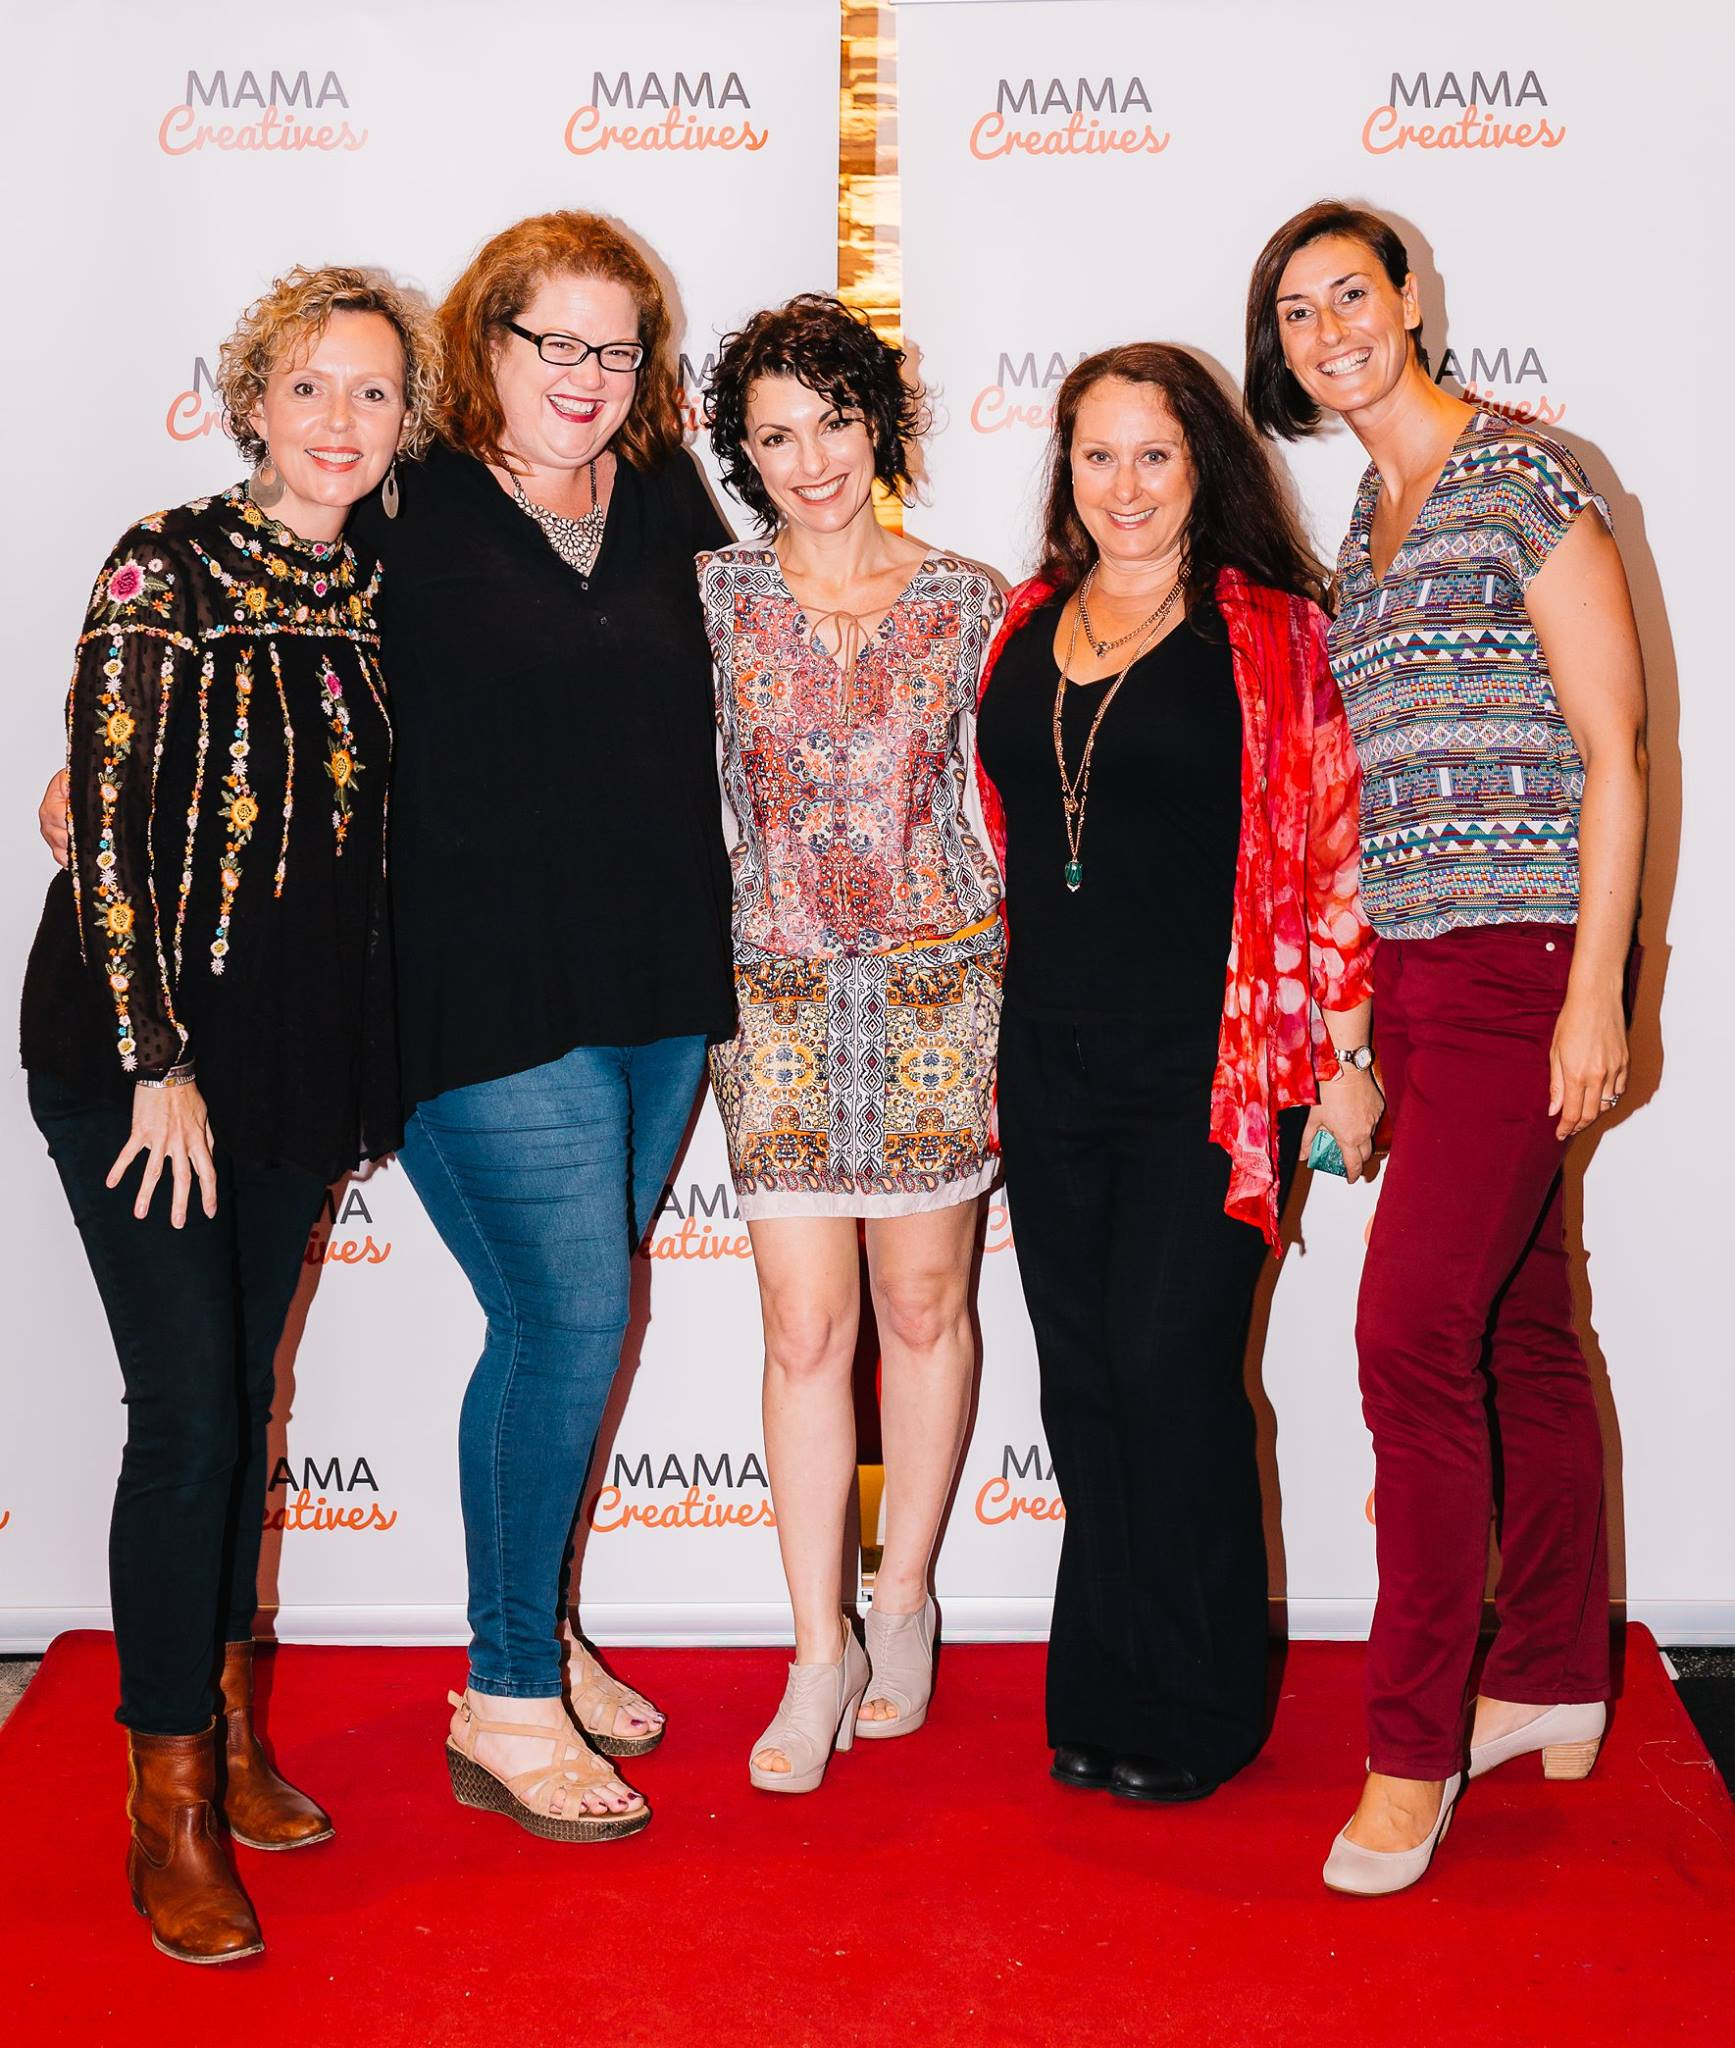 On the red carpet with some super talented creative women, Louise Trevitt, Bron Maxabella, Kerri Sackville, Justine Armstrong and Maeve Belshaw